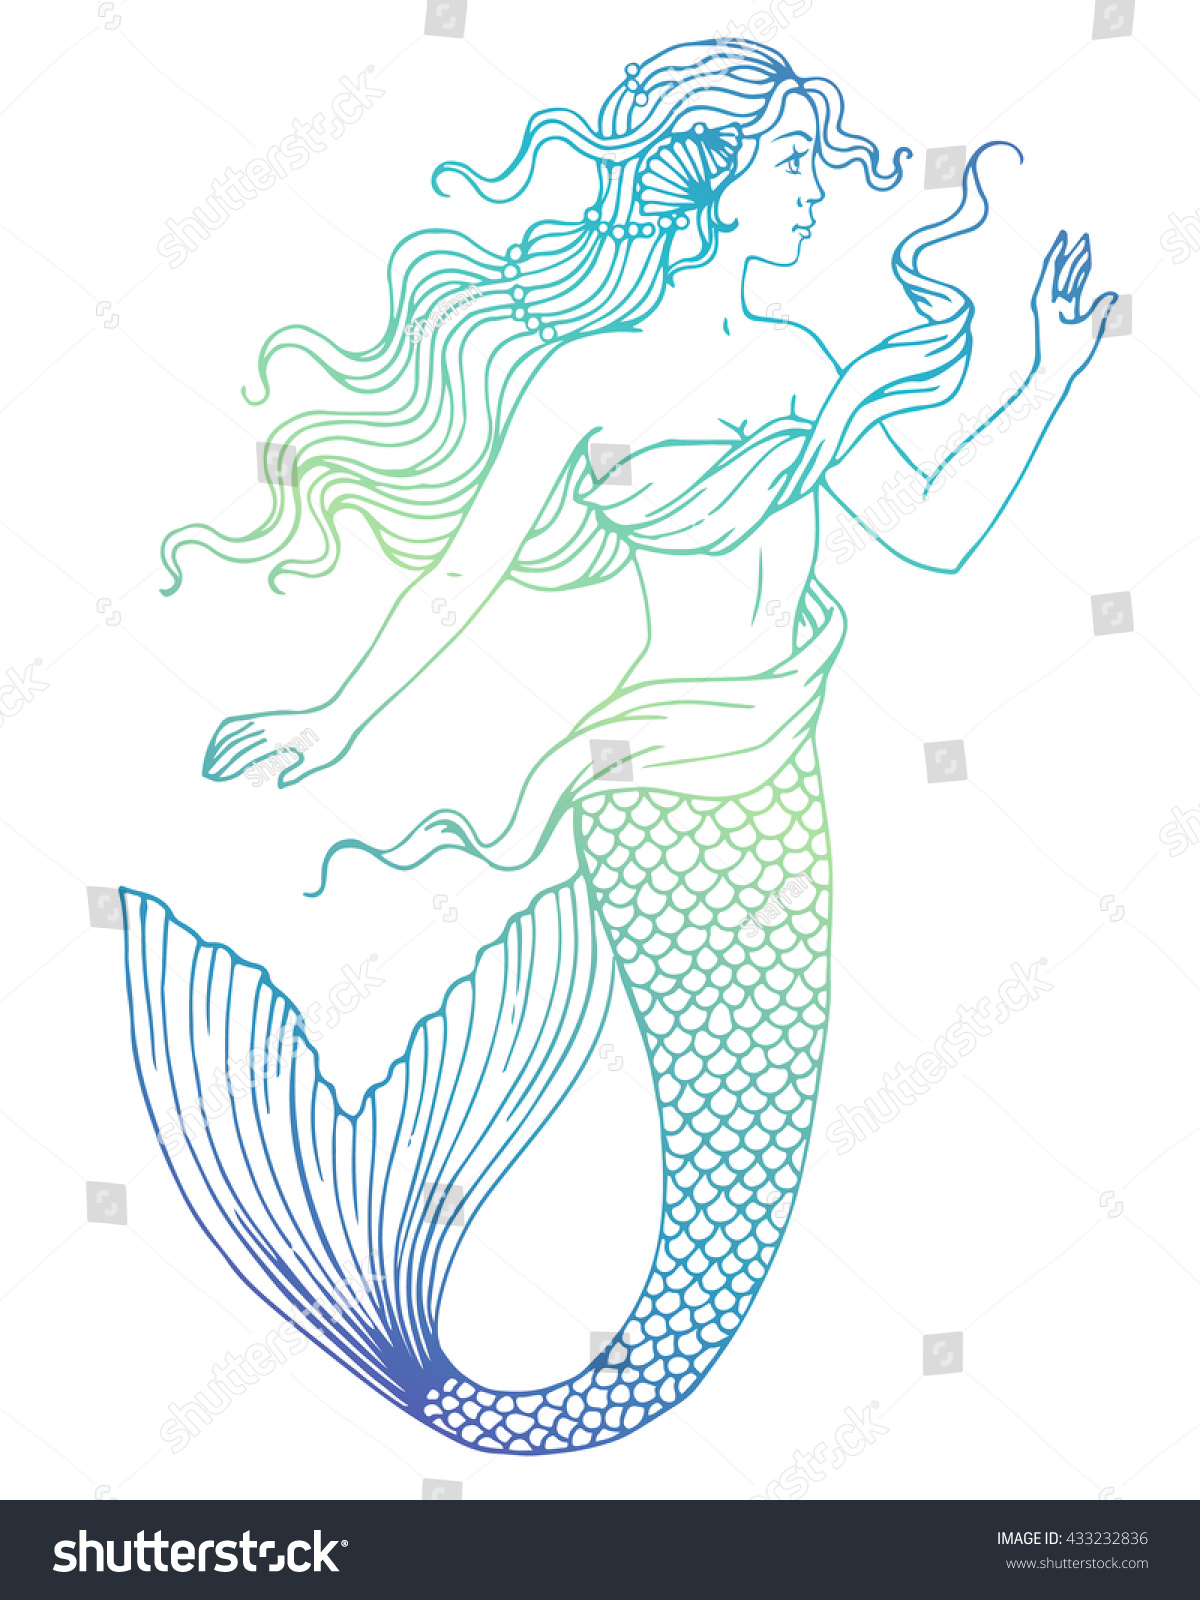 Hand painted mermaid watercolor vector silhouette stock vector - Beautiful Mermaid Outline Vector Hand Drawn Illustration On Watercolor Background